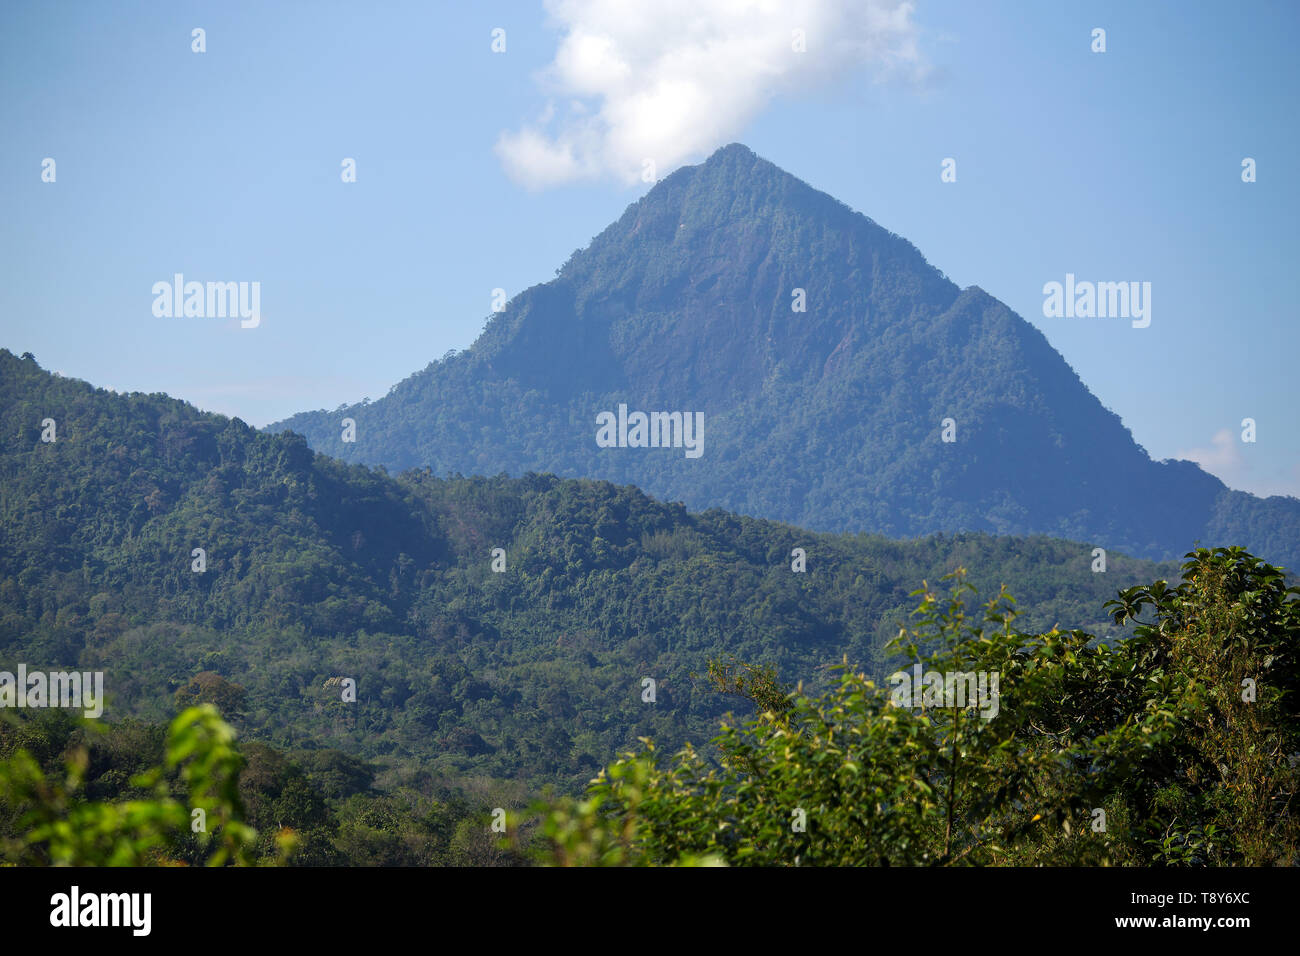 Mount Nunkok in Sabah Malaysia which is sometimes called Anak Kinabalu as it lies closely beneath it seen from Melangkap - Stock Image